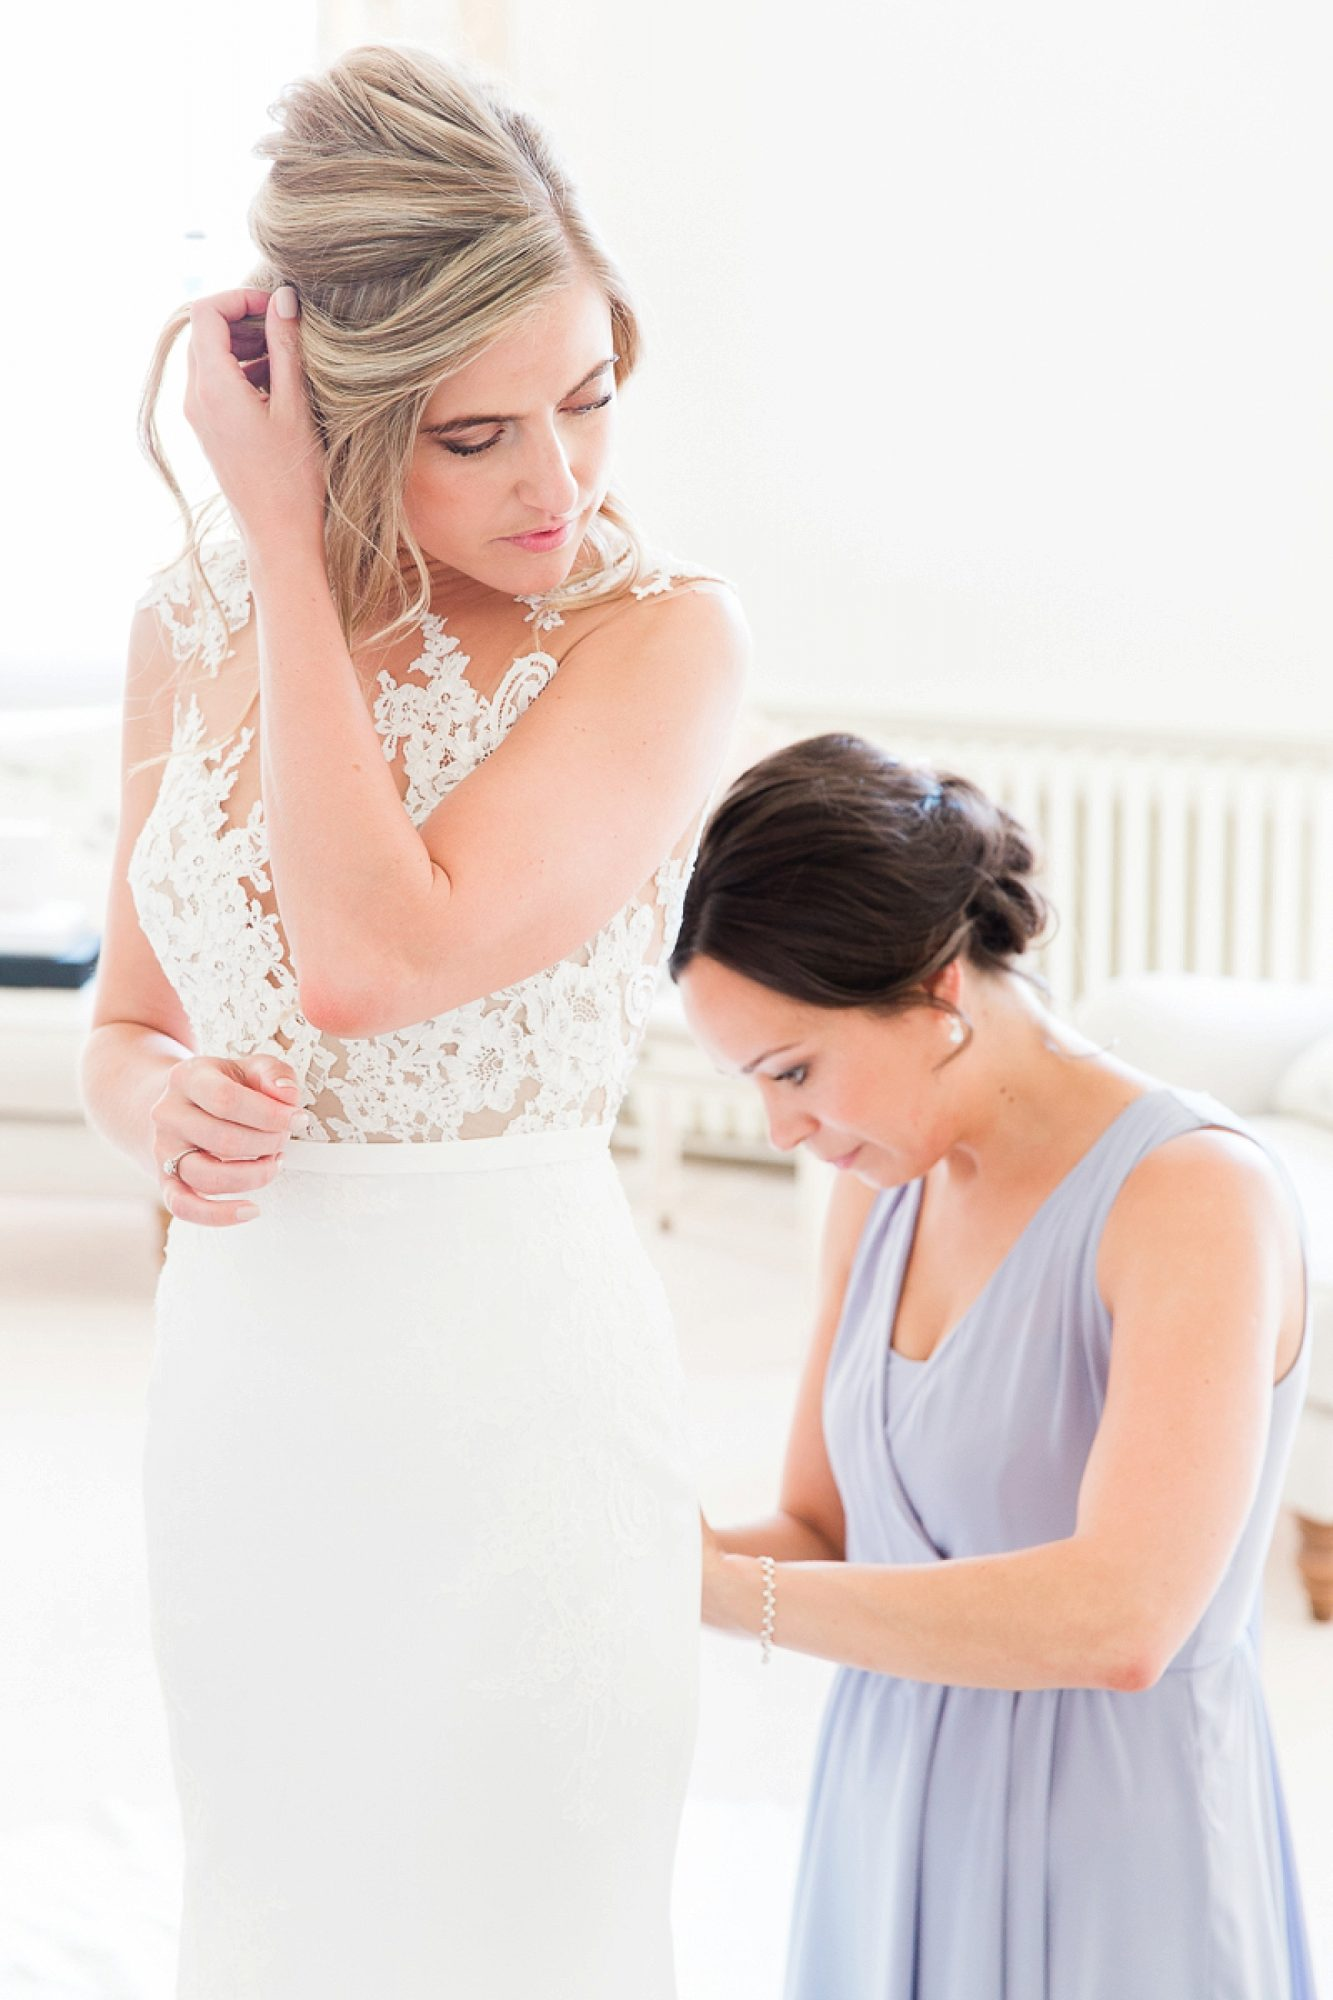 Bride holds hair as bridesmaids kneels on the floor behind and fastens her Pronovias dress